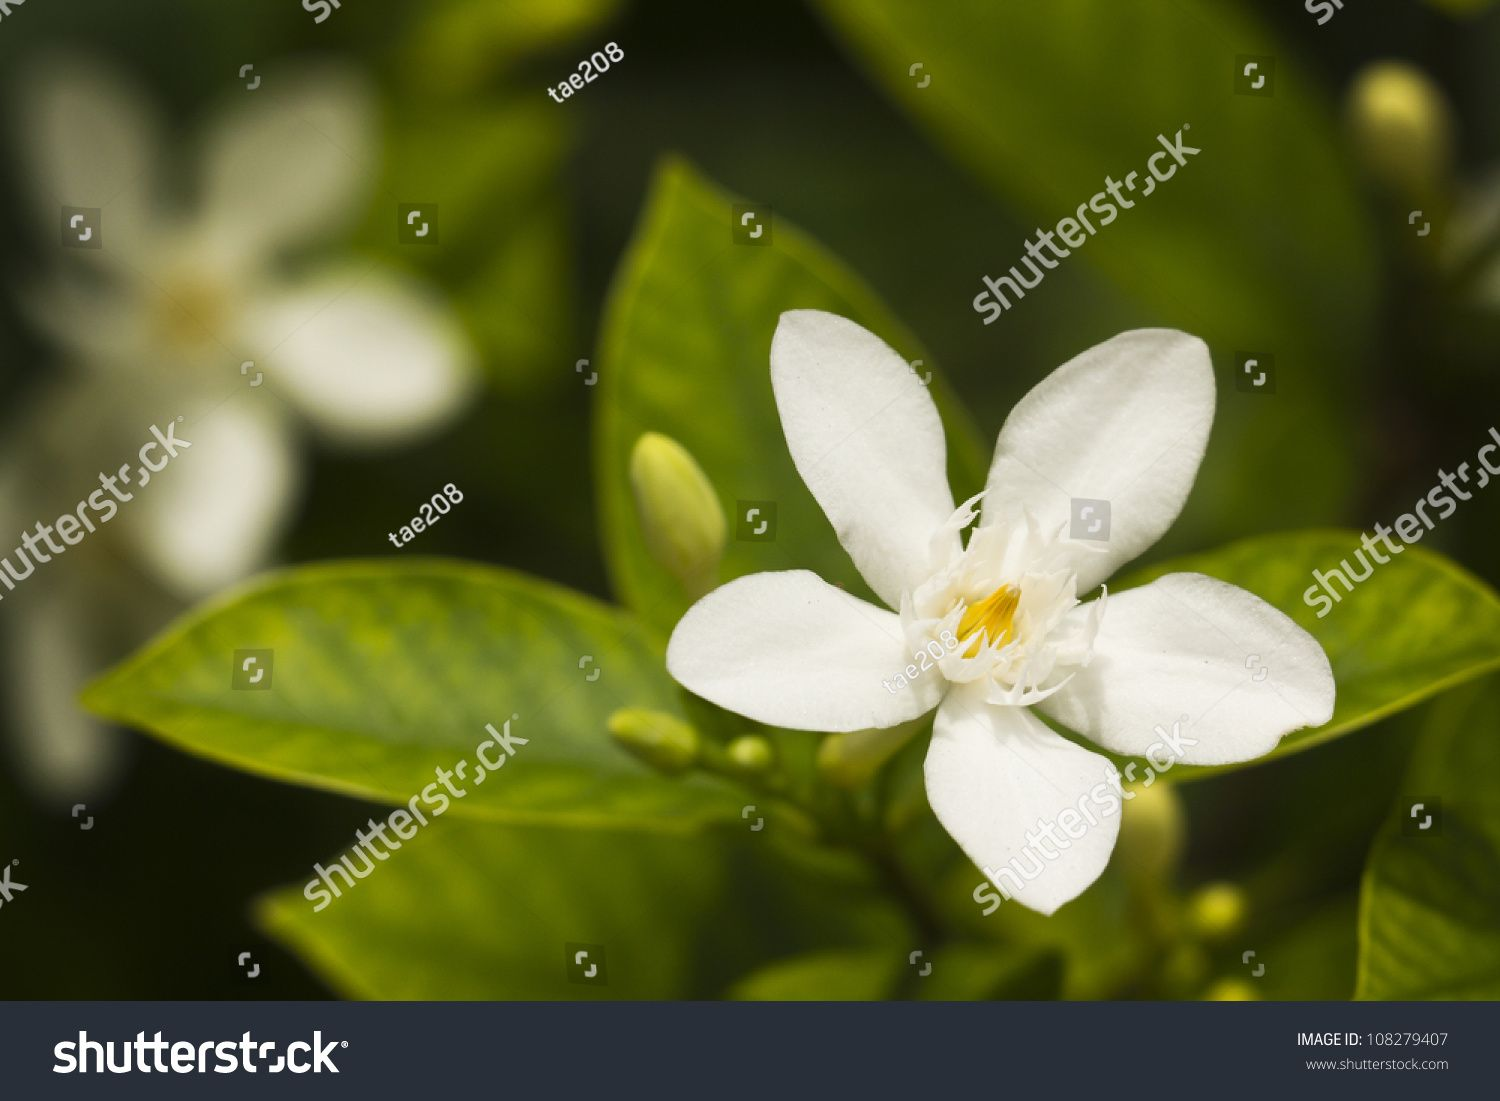 Stock Photo Thai White Jasmine Flower In The Garden 108279407g